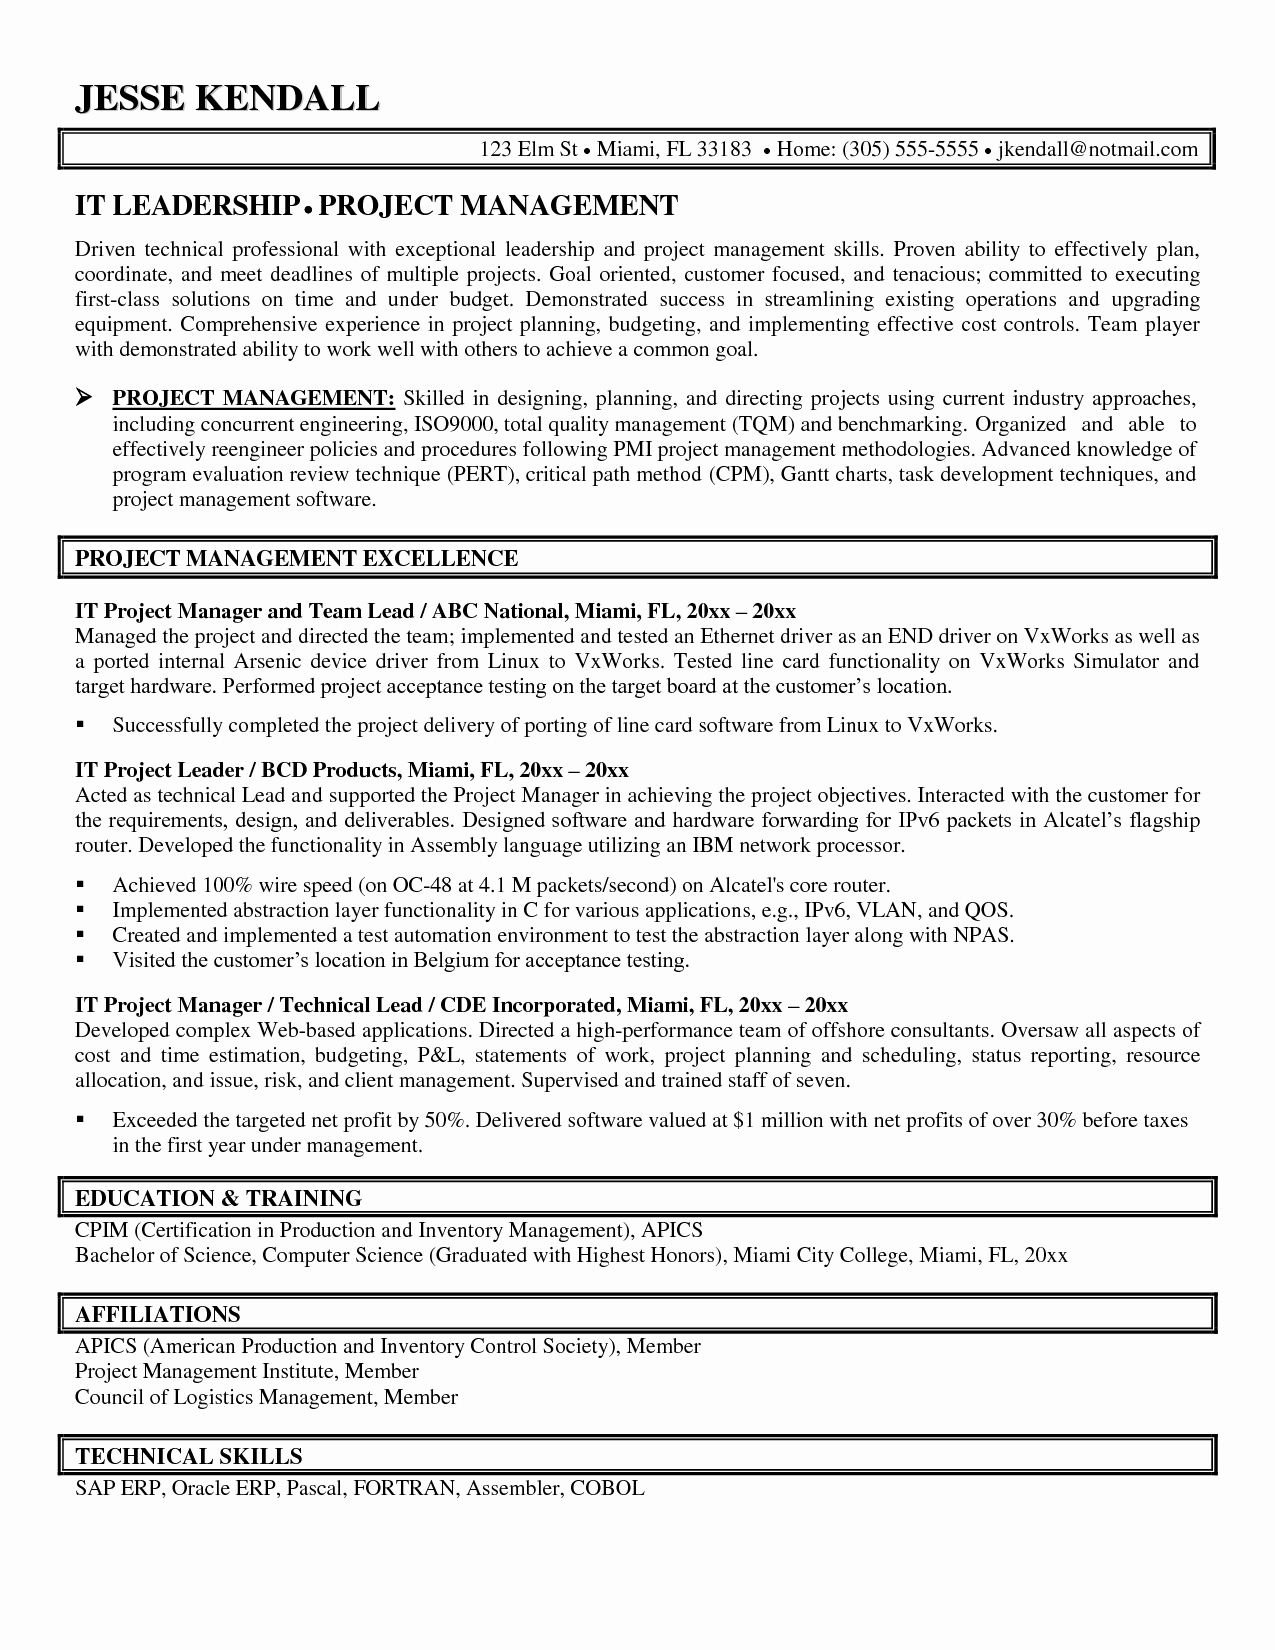 013 Leadership Goals And Objectives Examples The Best Of Shoes Writing An Informative Essay About Making Sacrifices Quizlet Awesome Sample Resume Forhnicalad Prewriting Activity Example Breathtaking Lead Exposure Generator Full